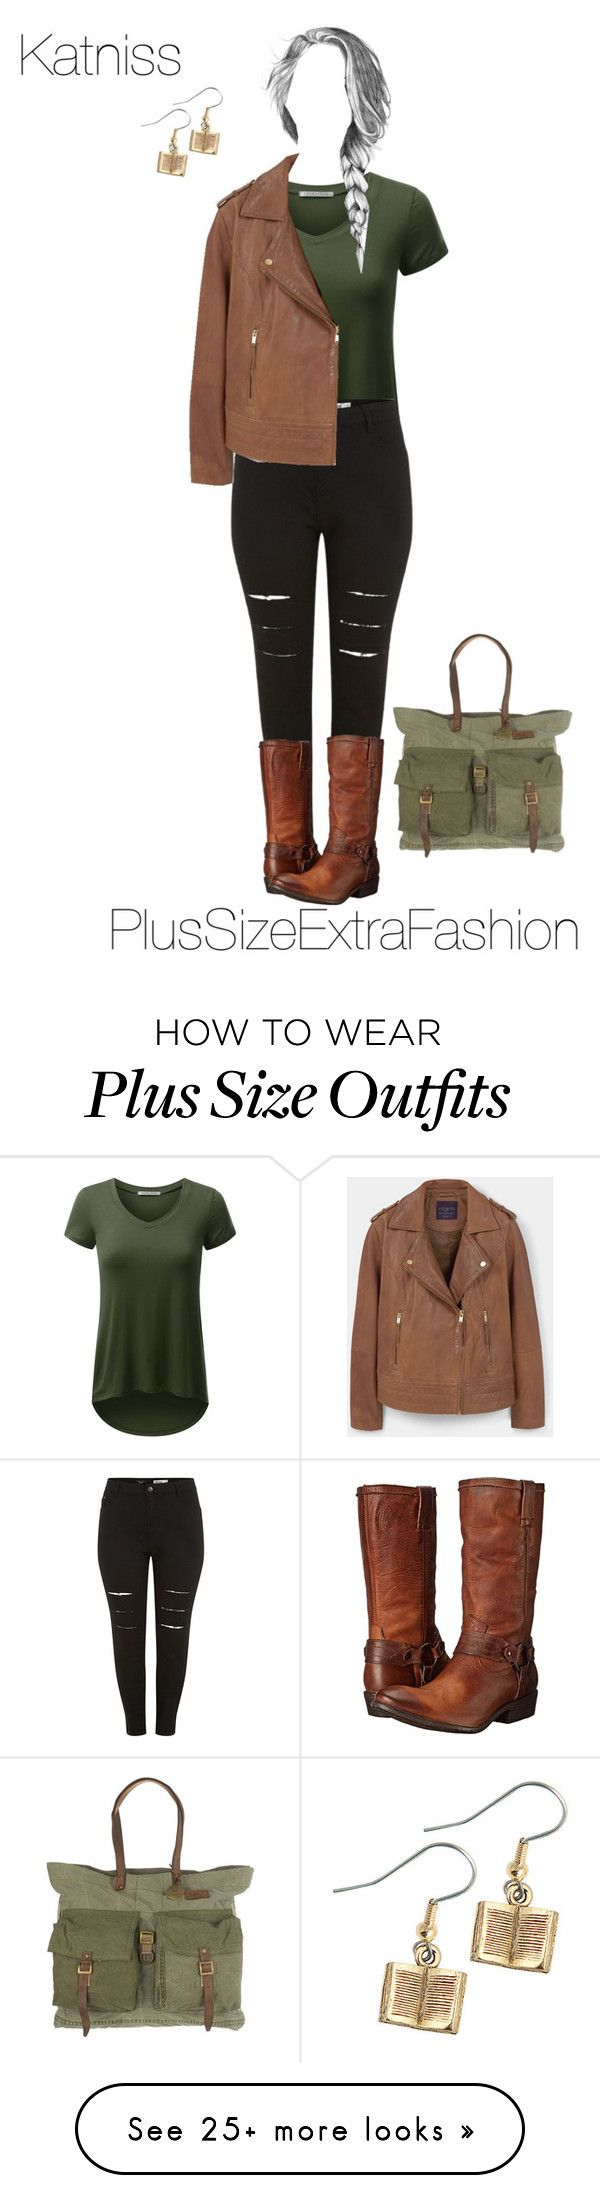 """Katniss Inspired Plus Size Outfit"" by plussizeextrafashion on Polyvore featuring MANGO, Frye, GE, Will Leather Goods, katniss, THG, plussize and plussizeextrafashion"